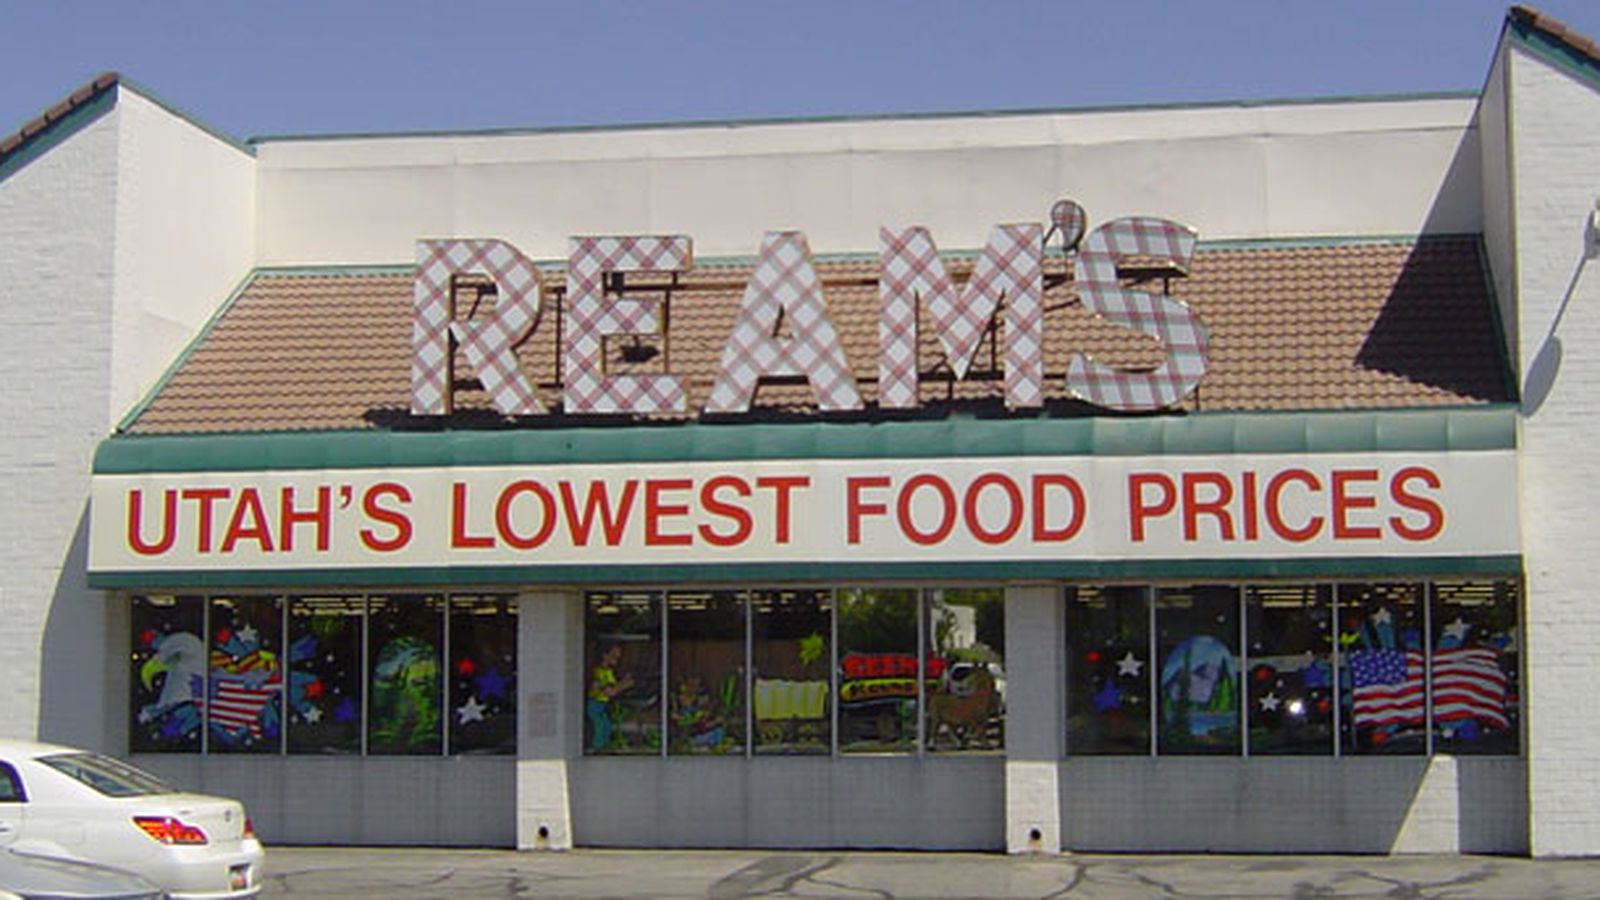 Reams clothing store